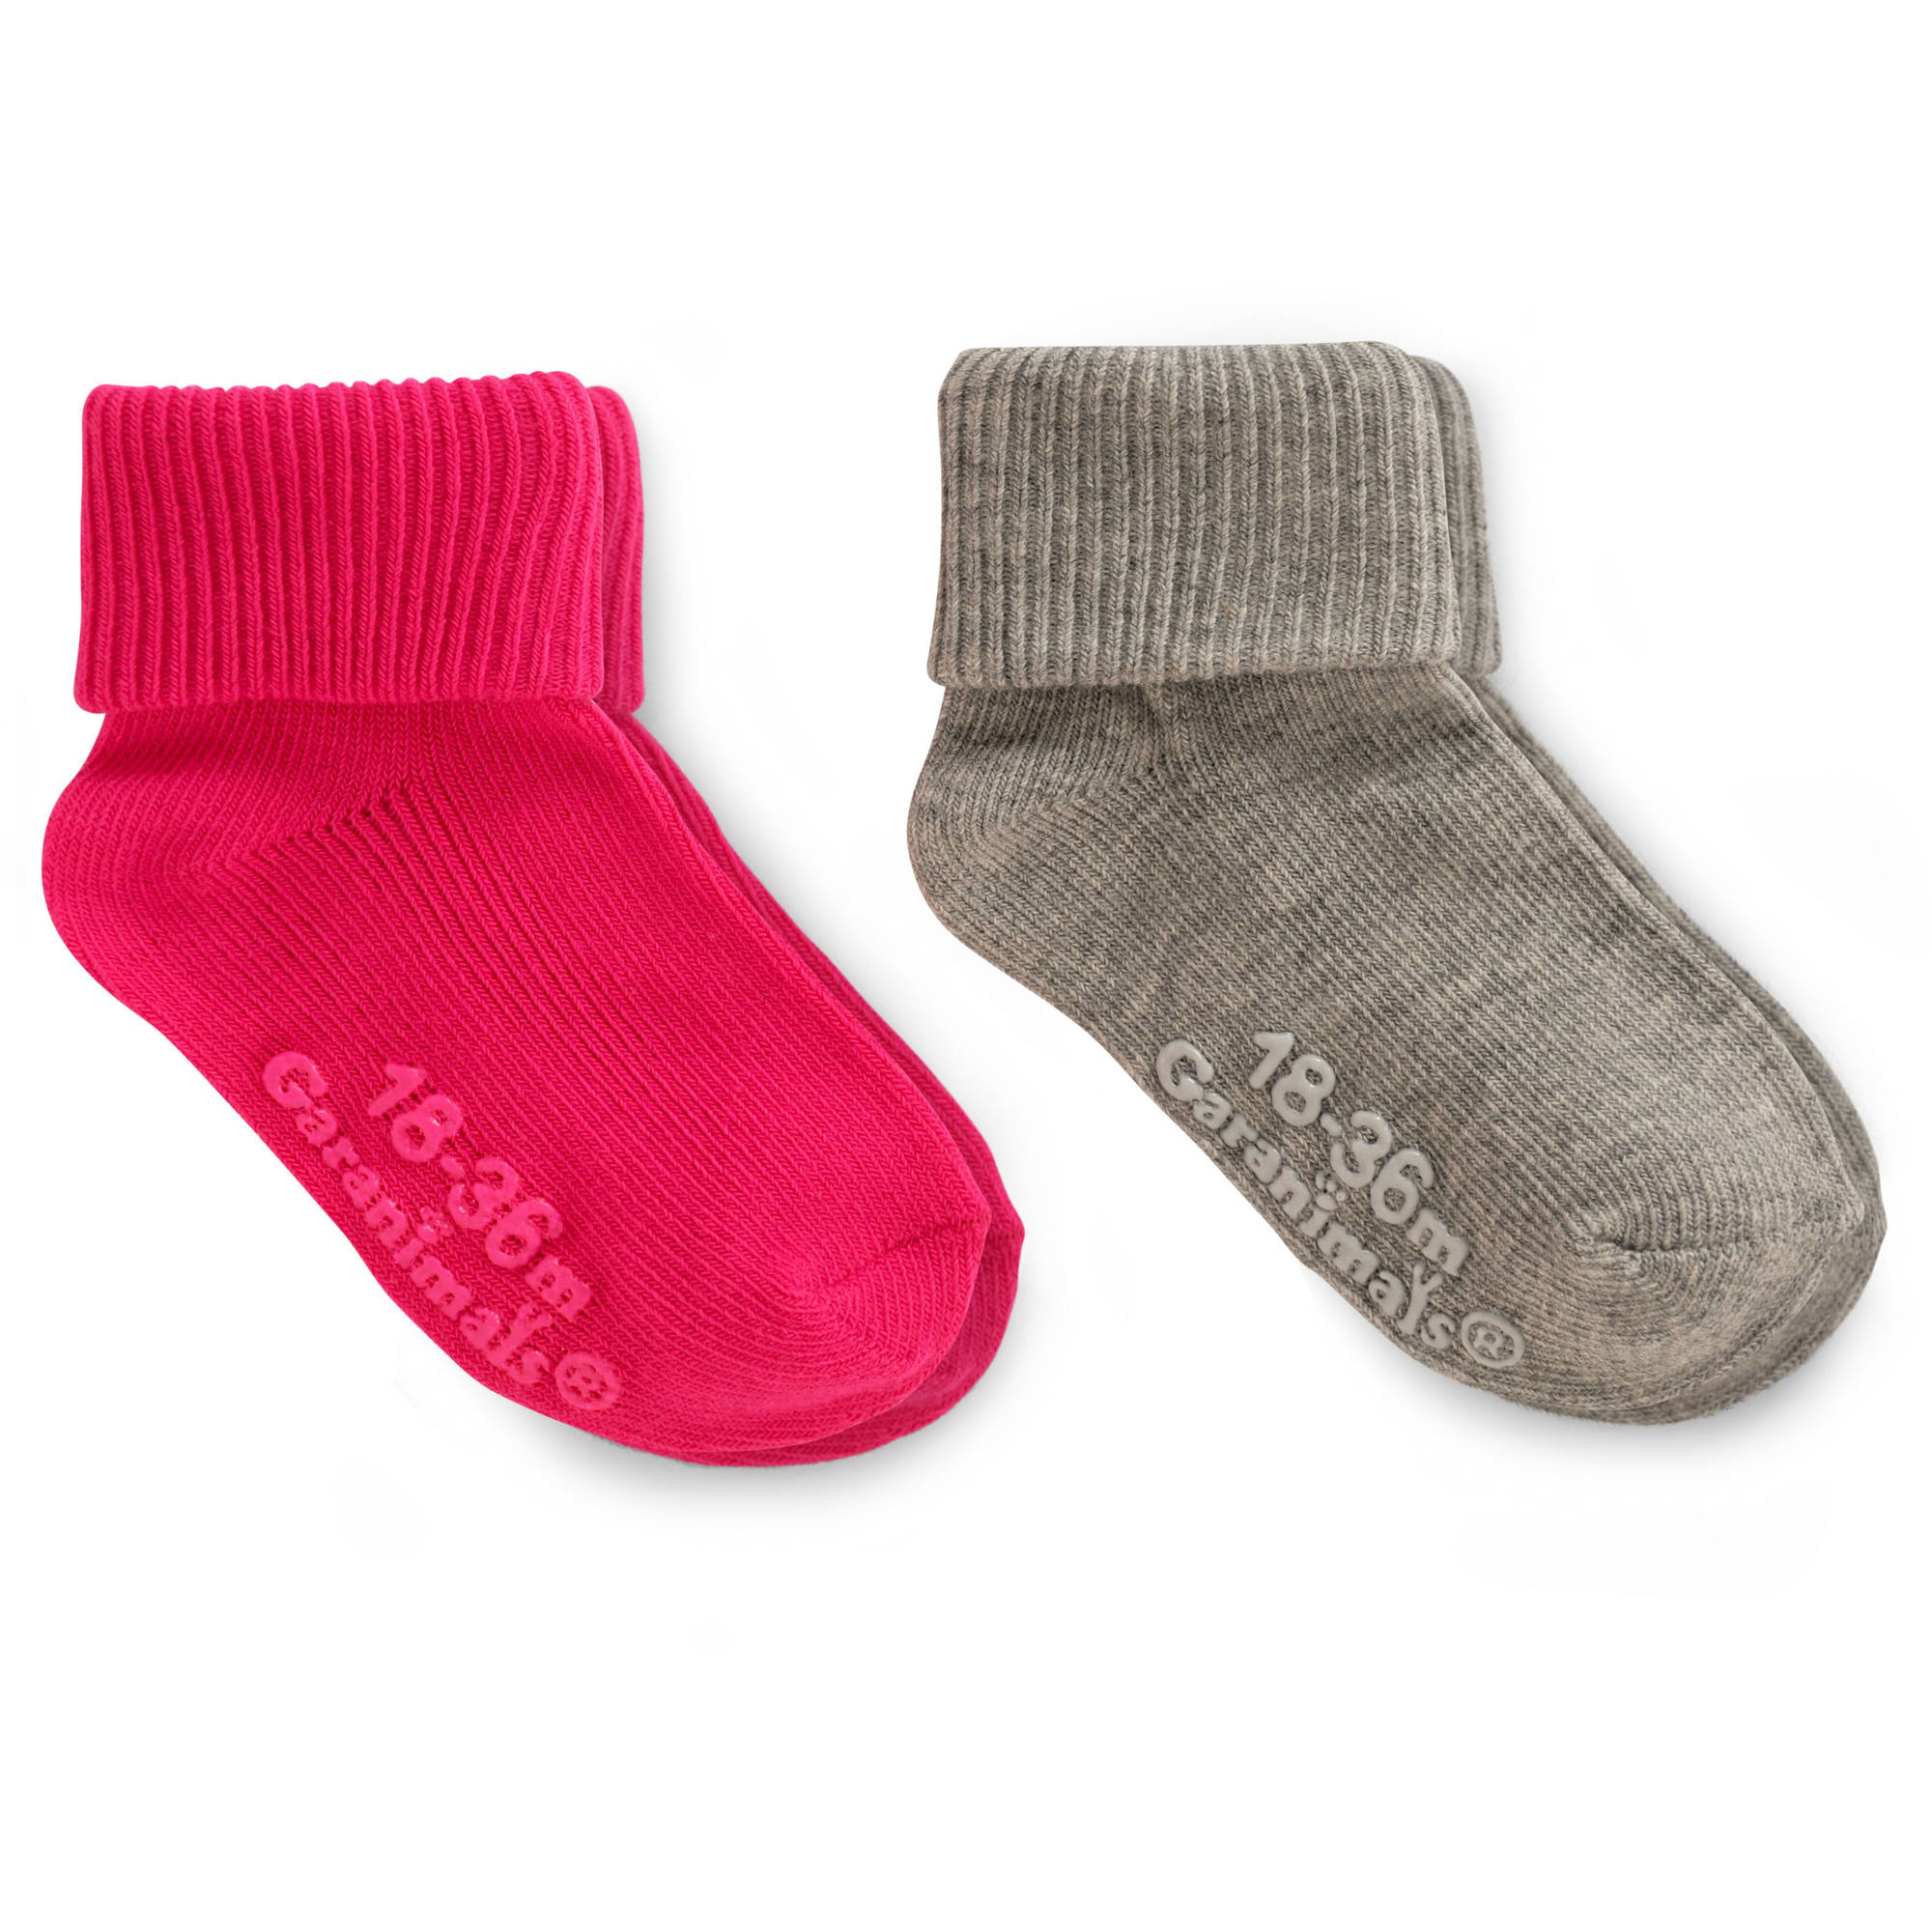 Garanimals Baby Toddler Girls Pink/Grey Gripper Socks Ages NB-5T, 2-Pack